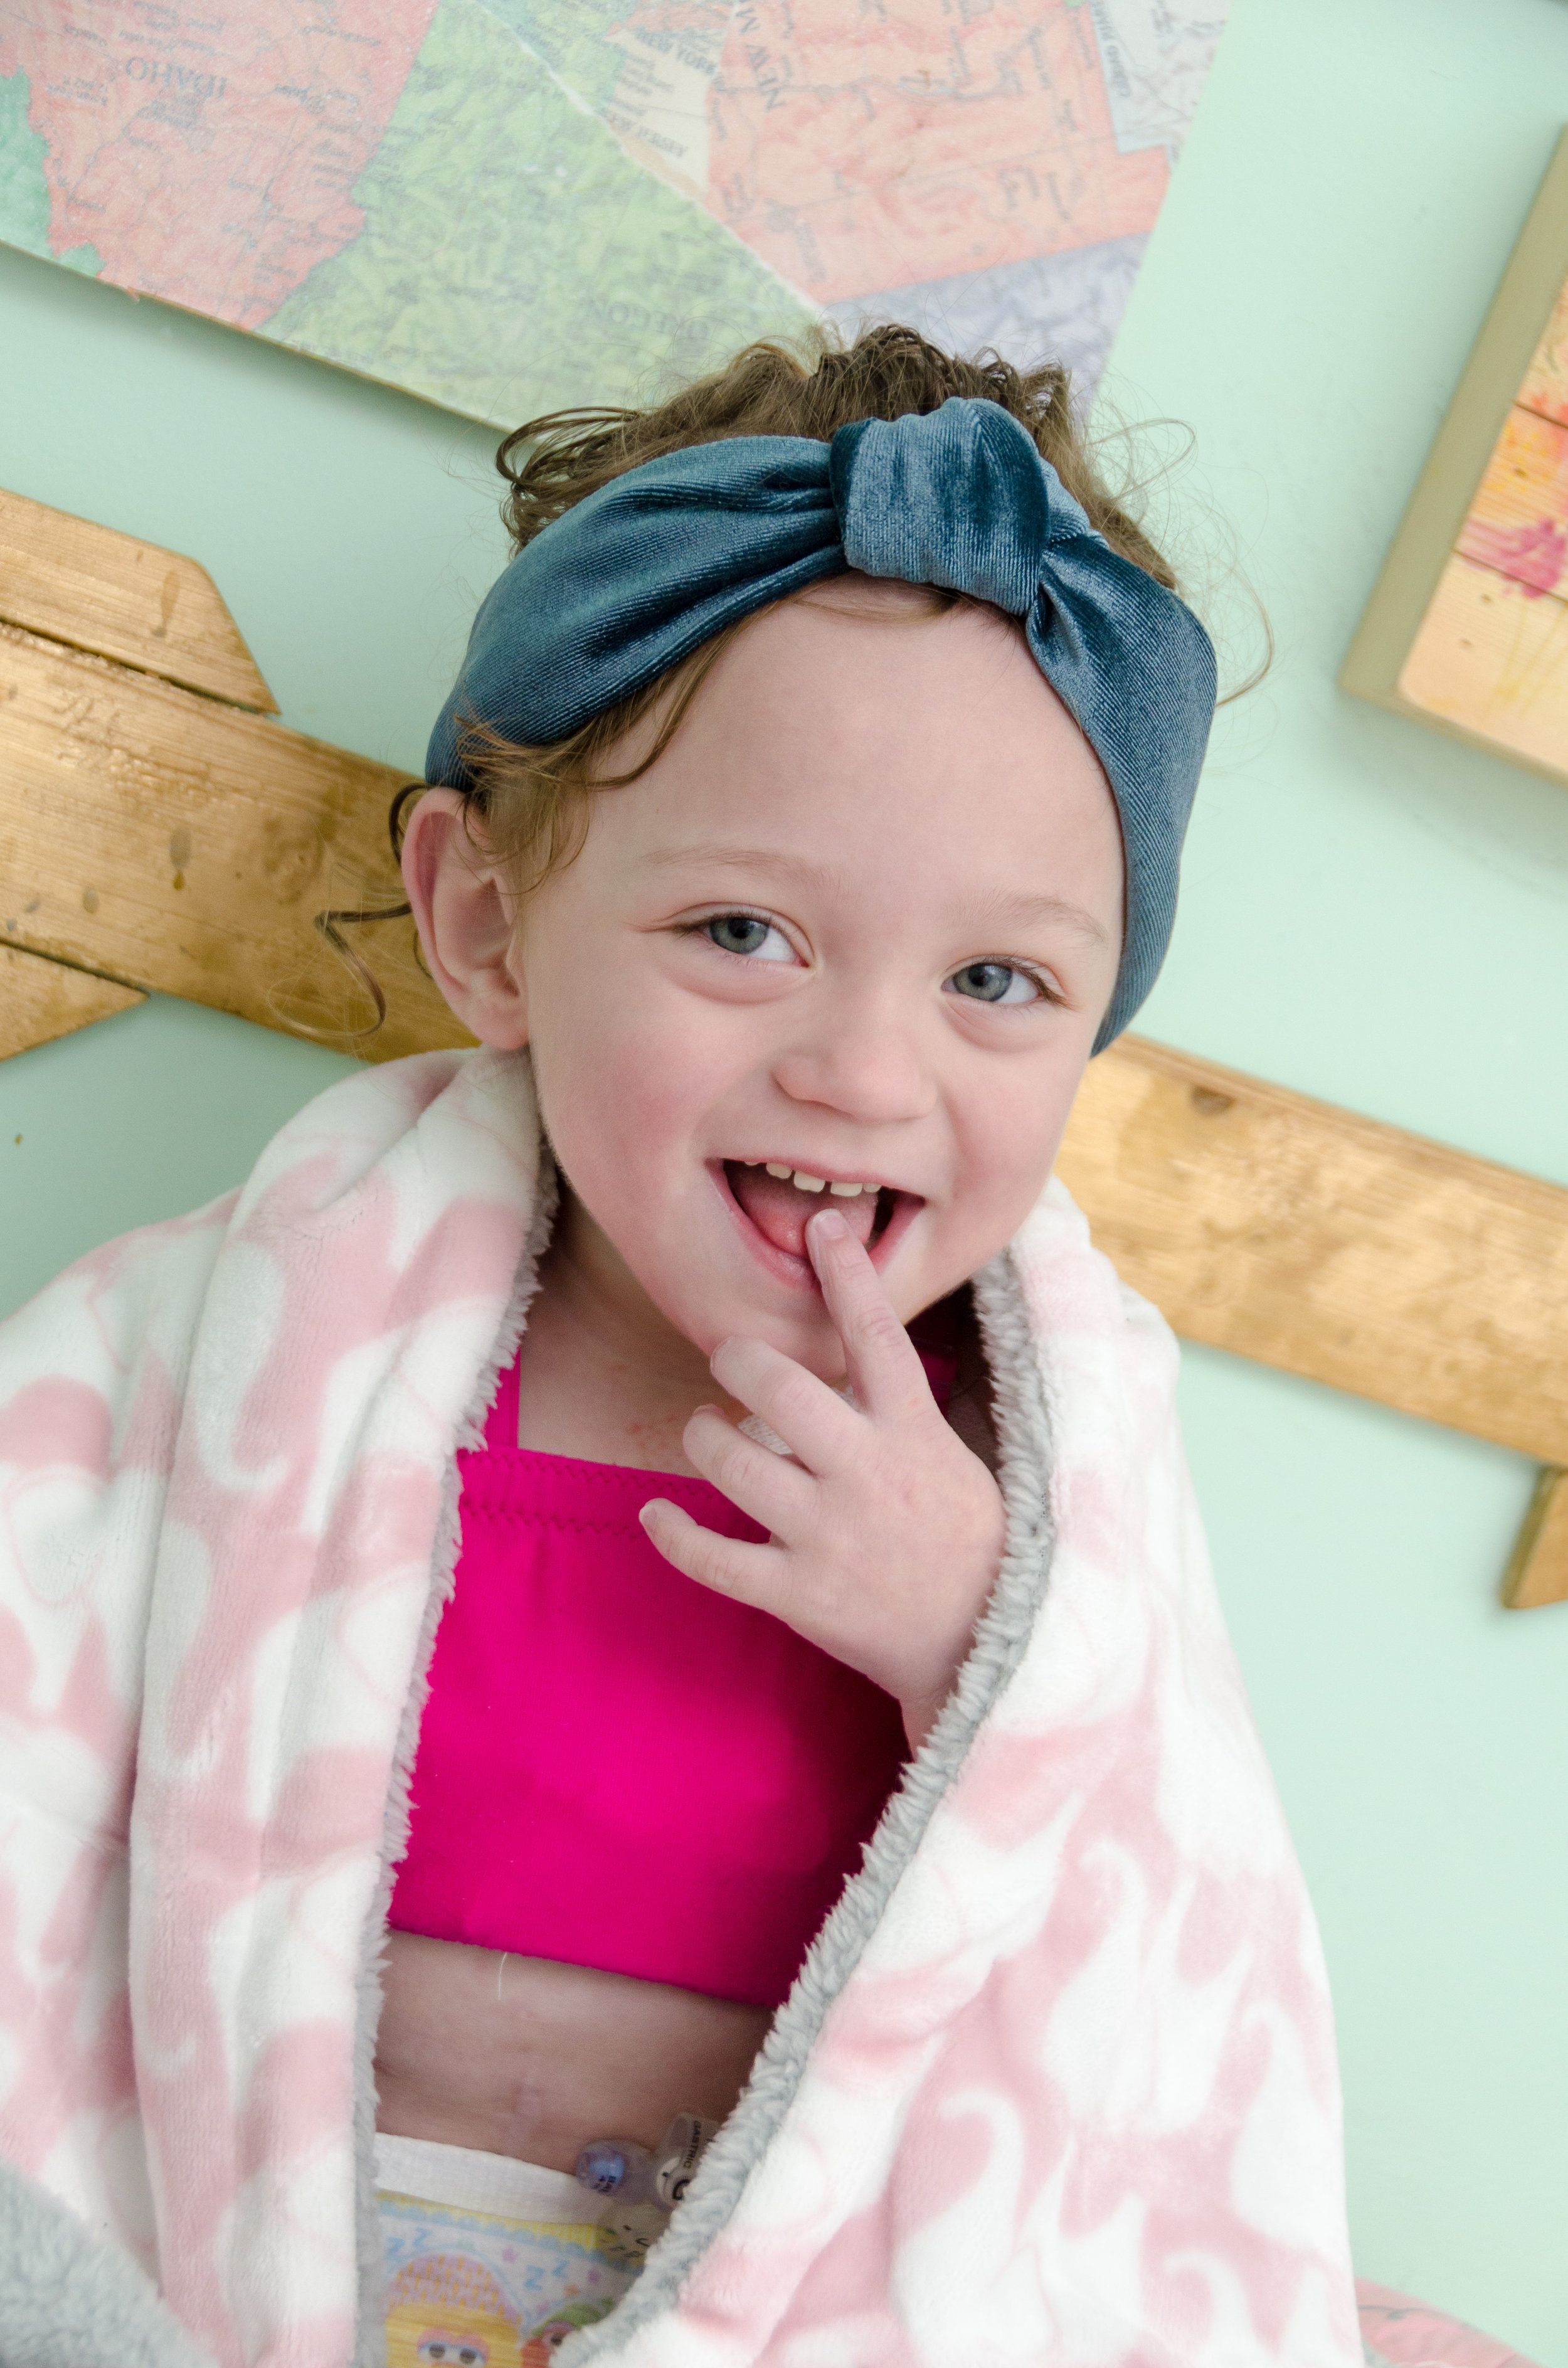 What Else is Addie Wearing? - Her headband is made by our favorite KRZA and her blanket is from Hello Snuggles which is the softest.